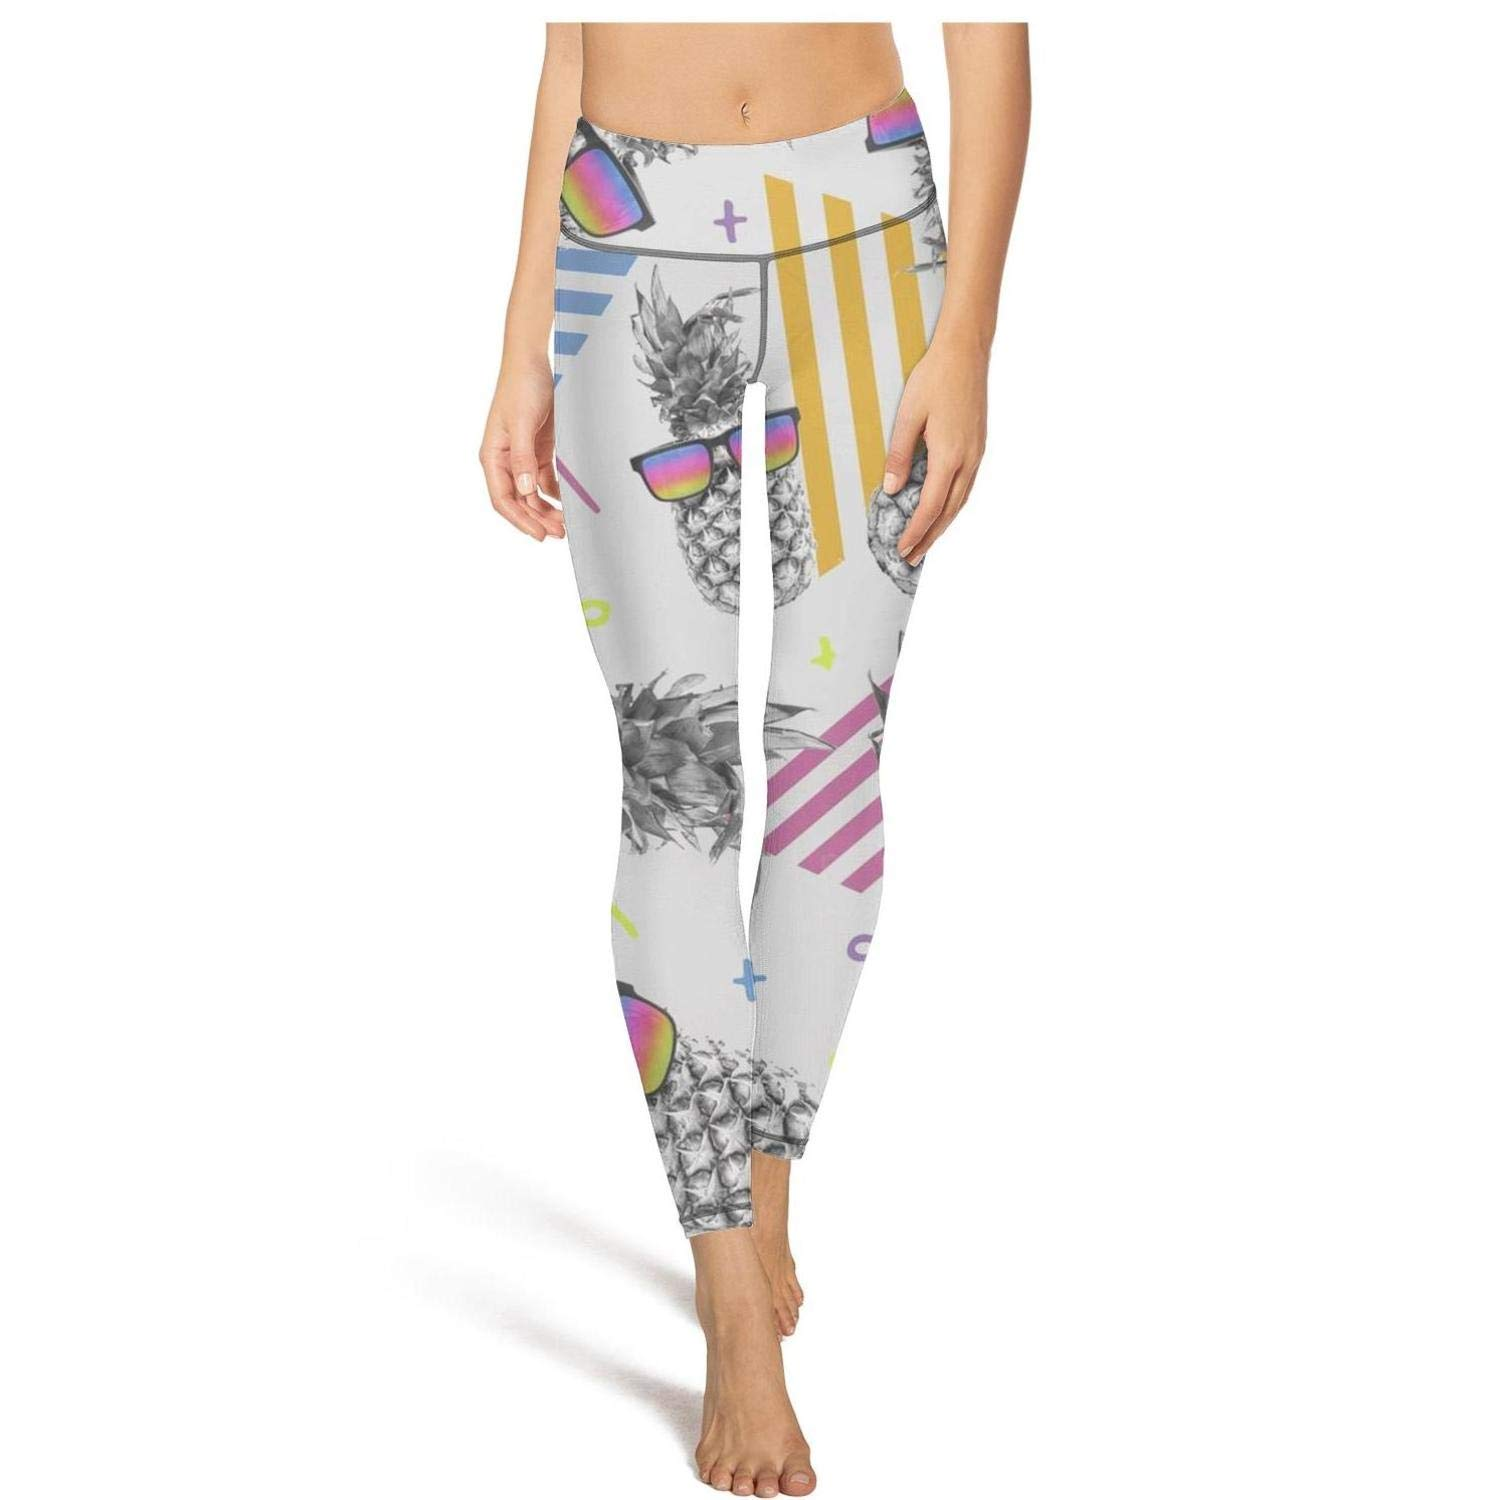 Hamily Broderei Women's Yoga Leggings Awesome Style Pineapple with Vintage Eye Glasses Exercise Workout Pants Gym Tights